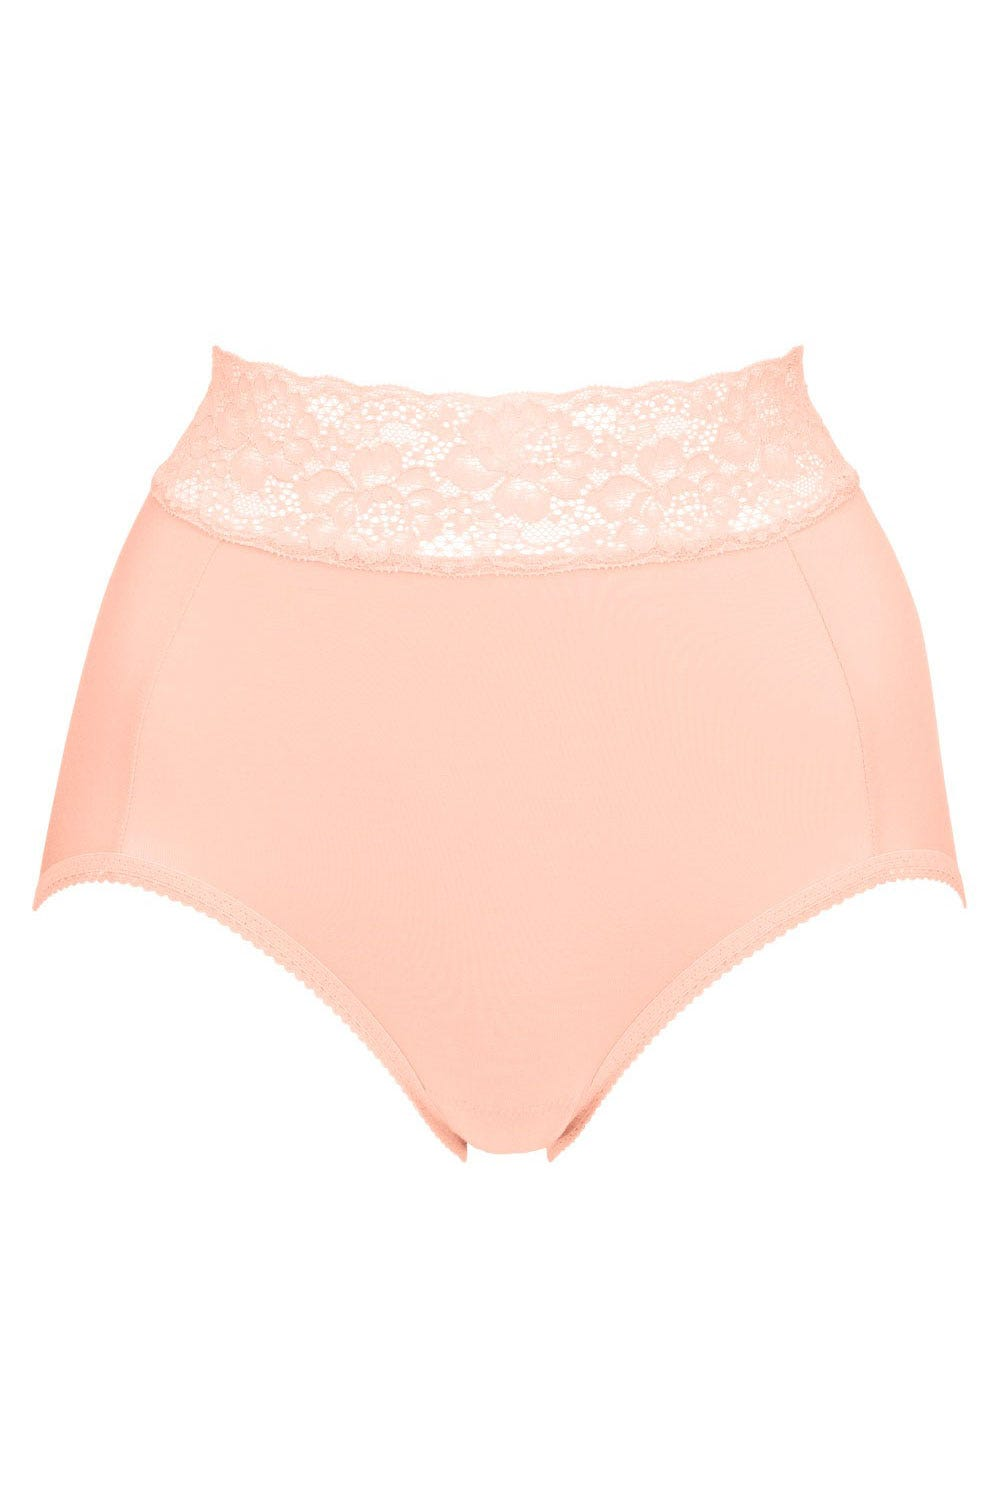 NYC Sexy Lingerie - Where To Buy Bras In New York